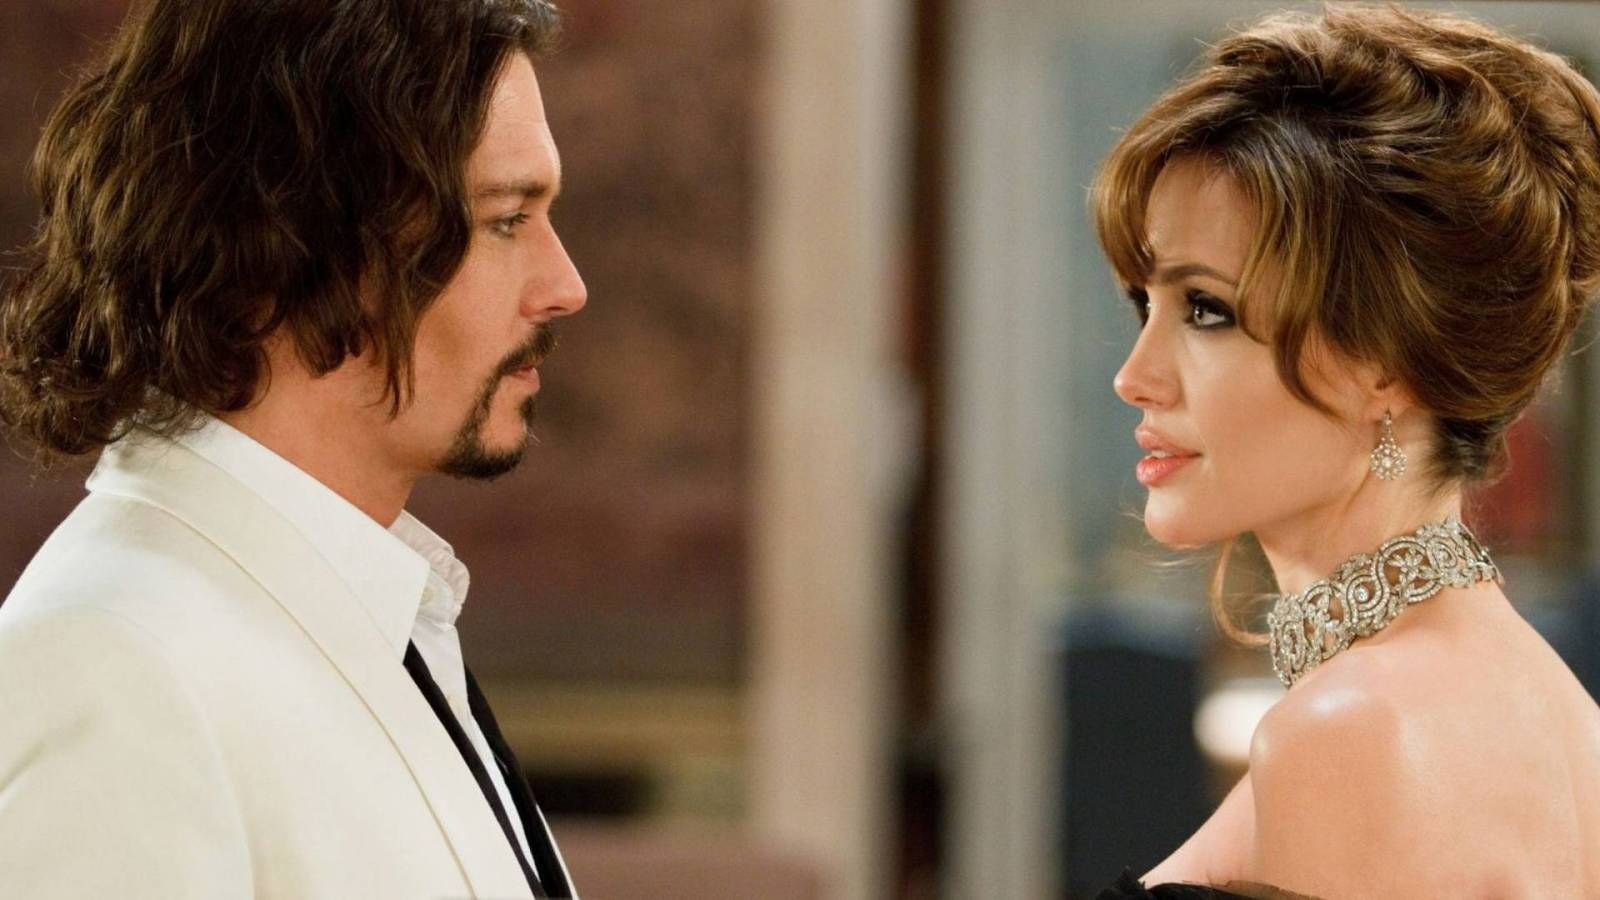 Top 10 Angelina Jolie Movies Of All Time Thought For Your Penny O Turista Turista Johnny Depp